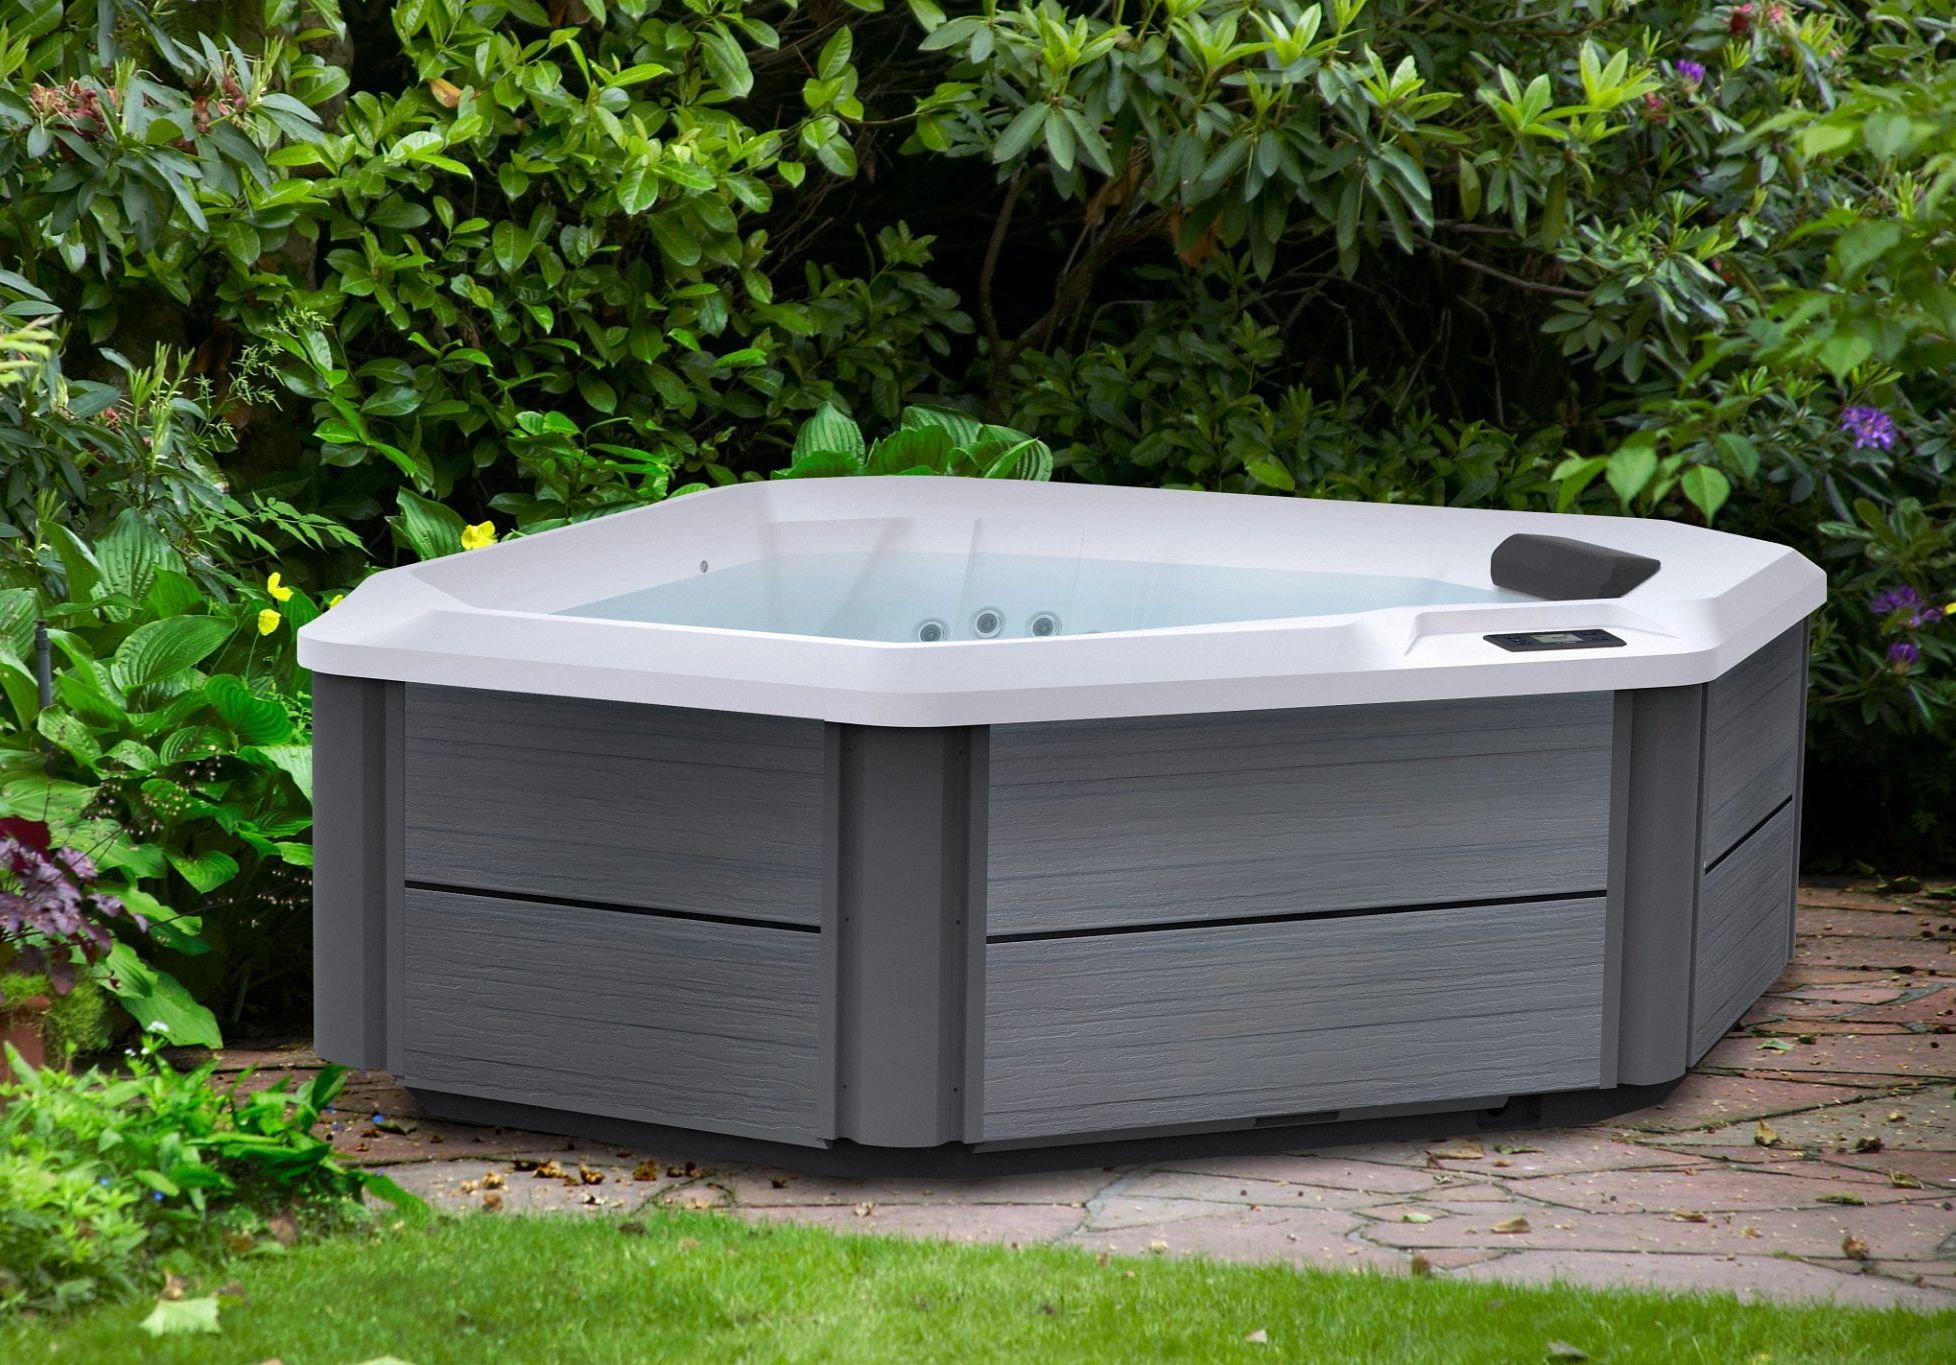 Hot Spot TX Spas fit perfect in any yard